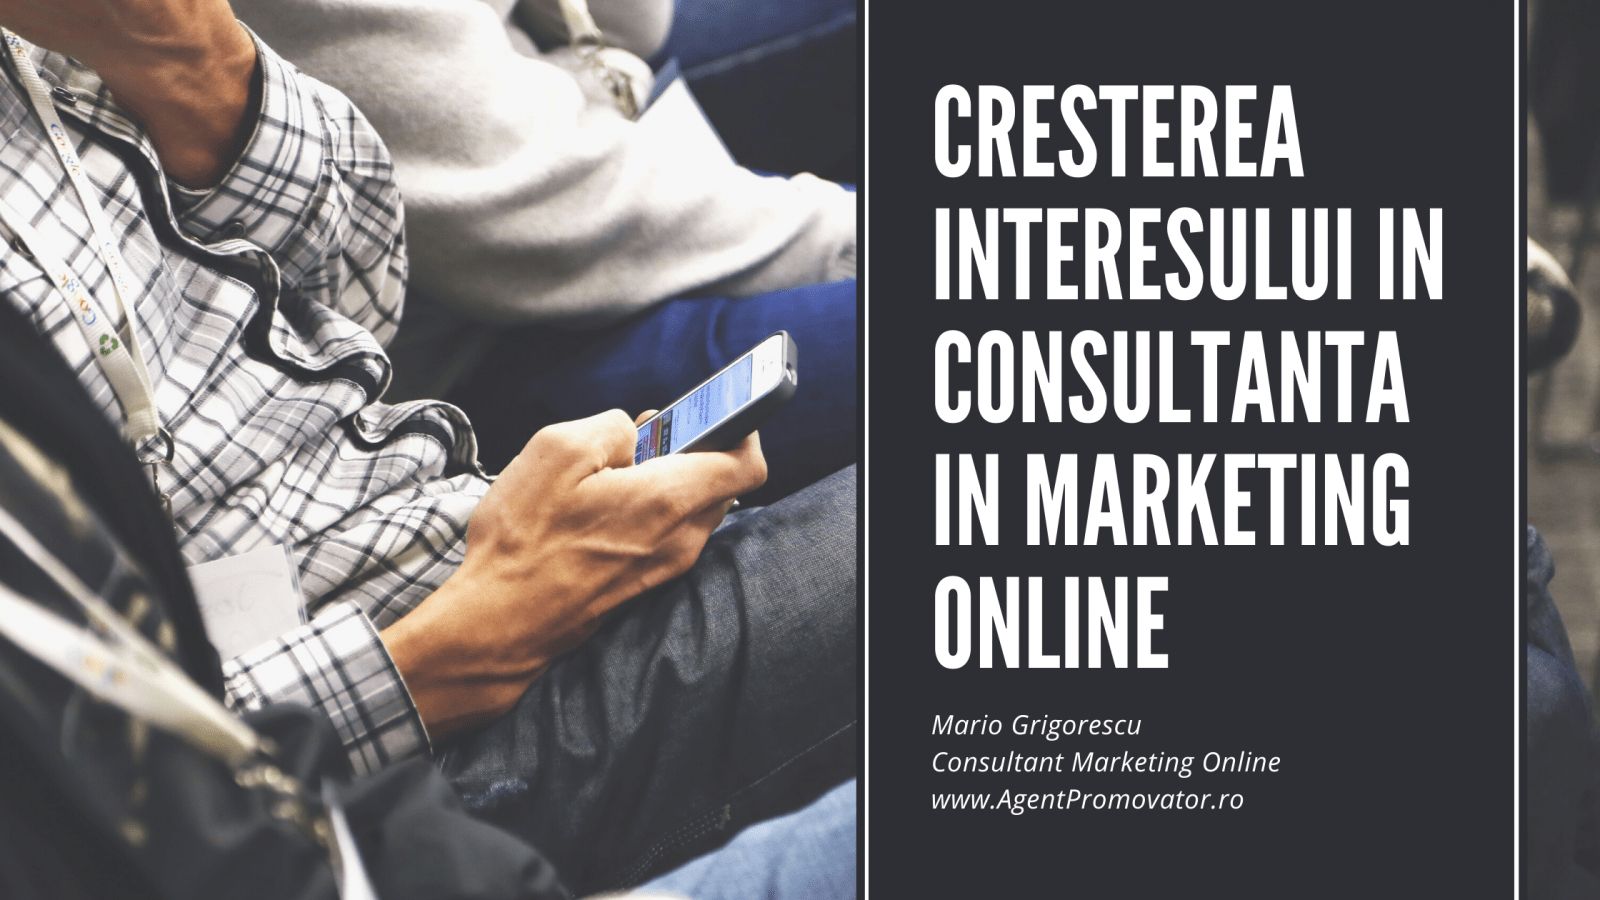 Consultanta in Marketing Online